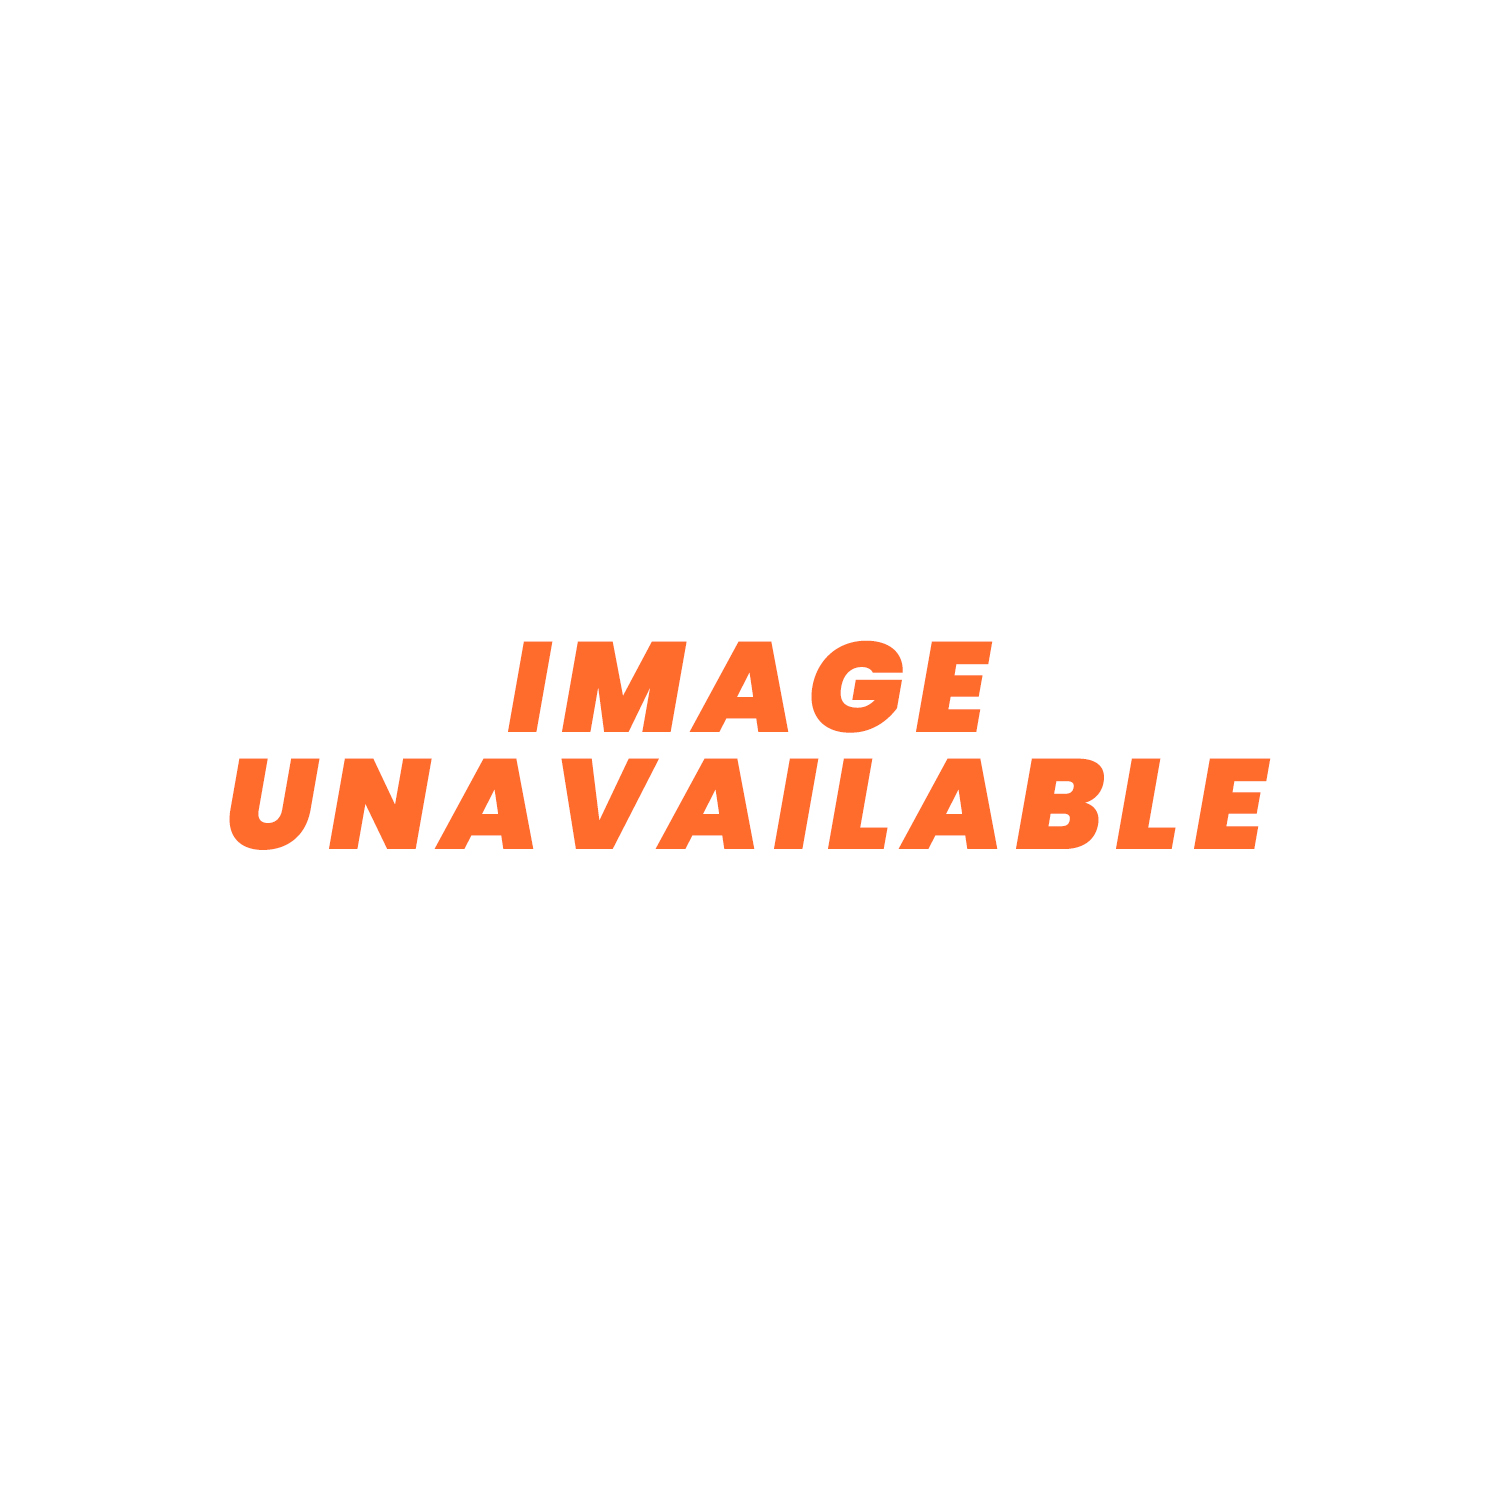 220 V AC 500w Panel Mounted Electric Heater